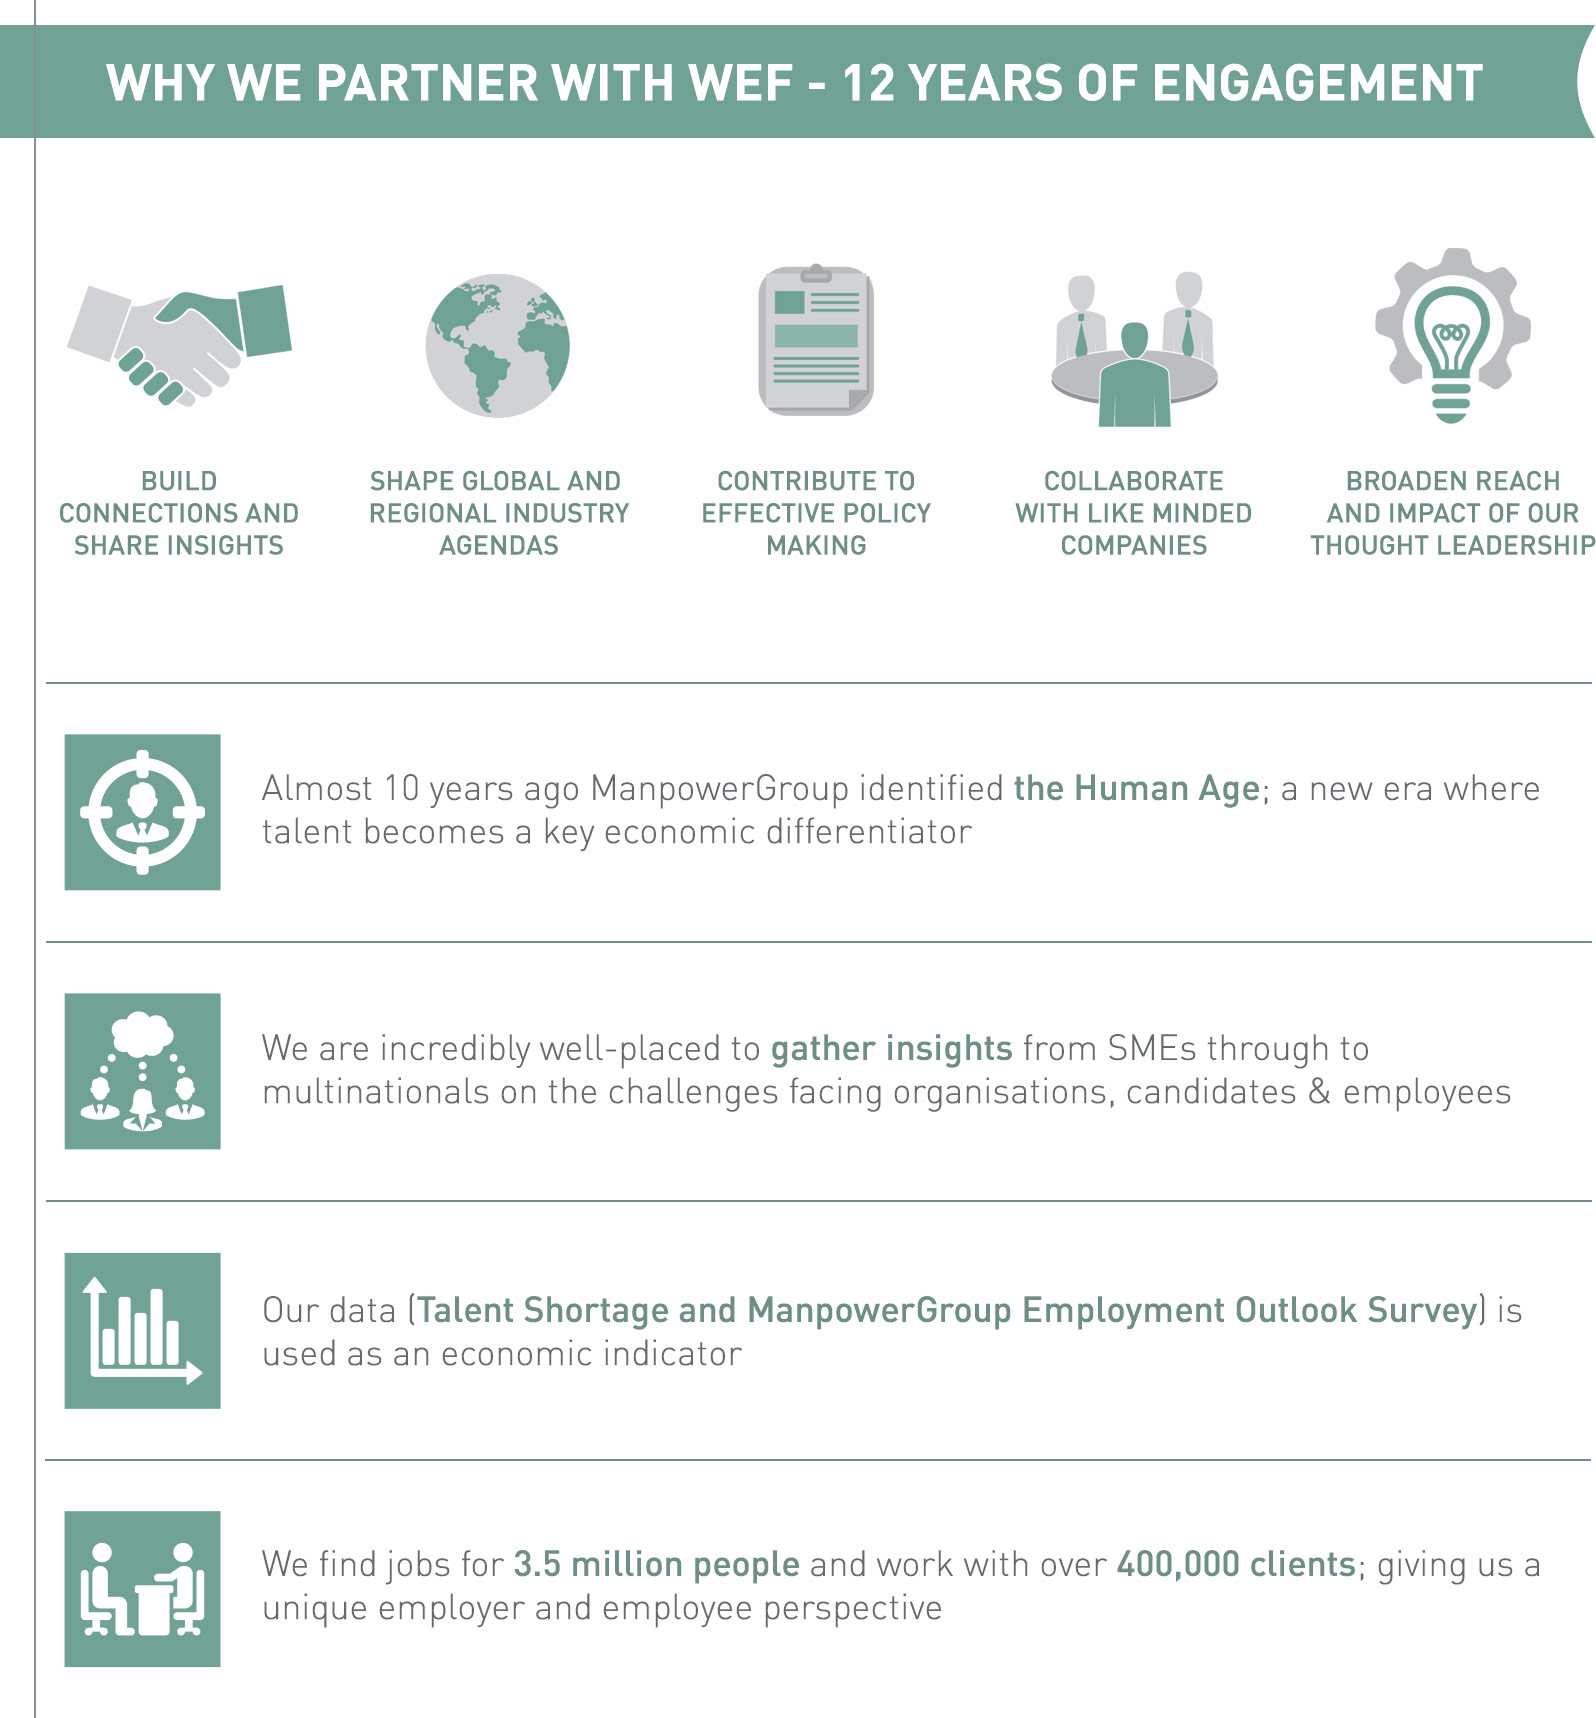 Why We Partner With WEF